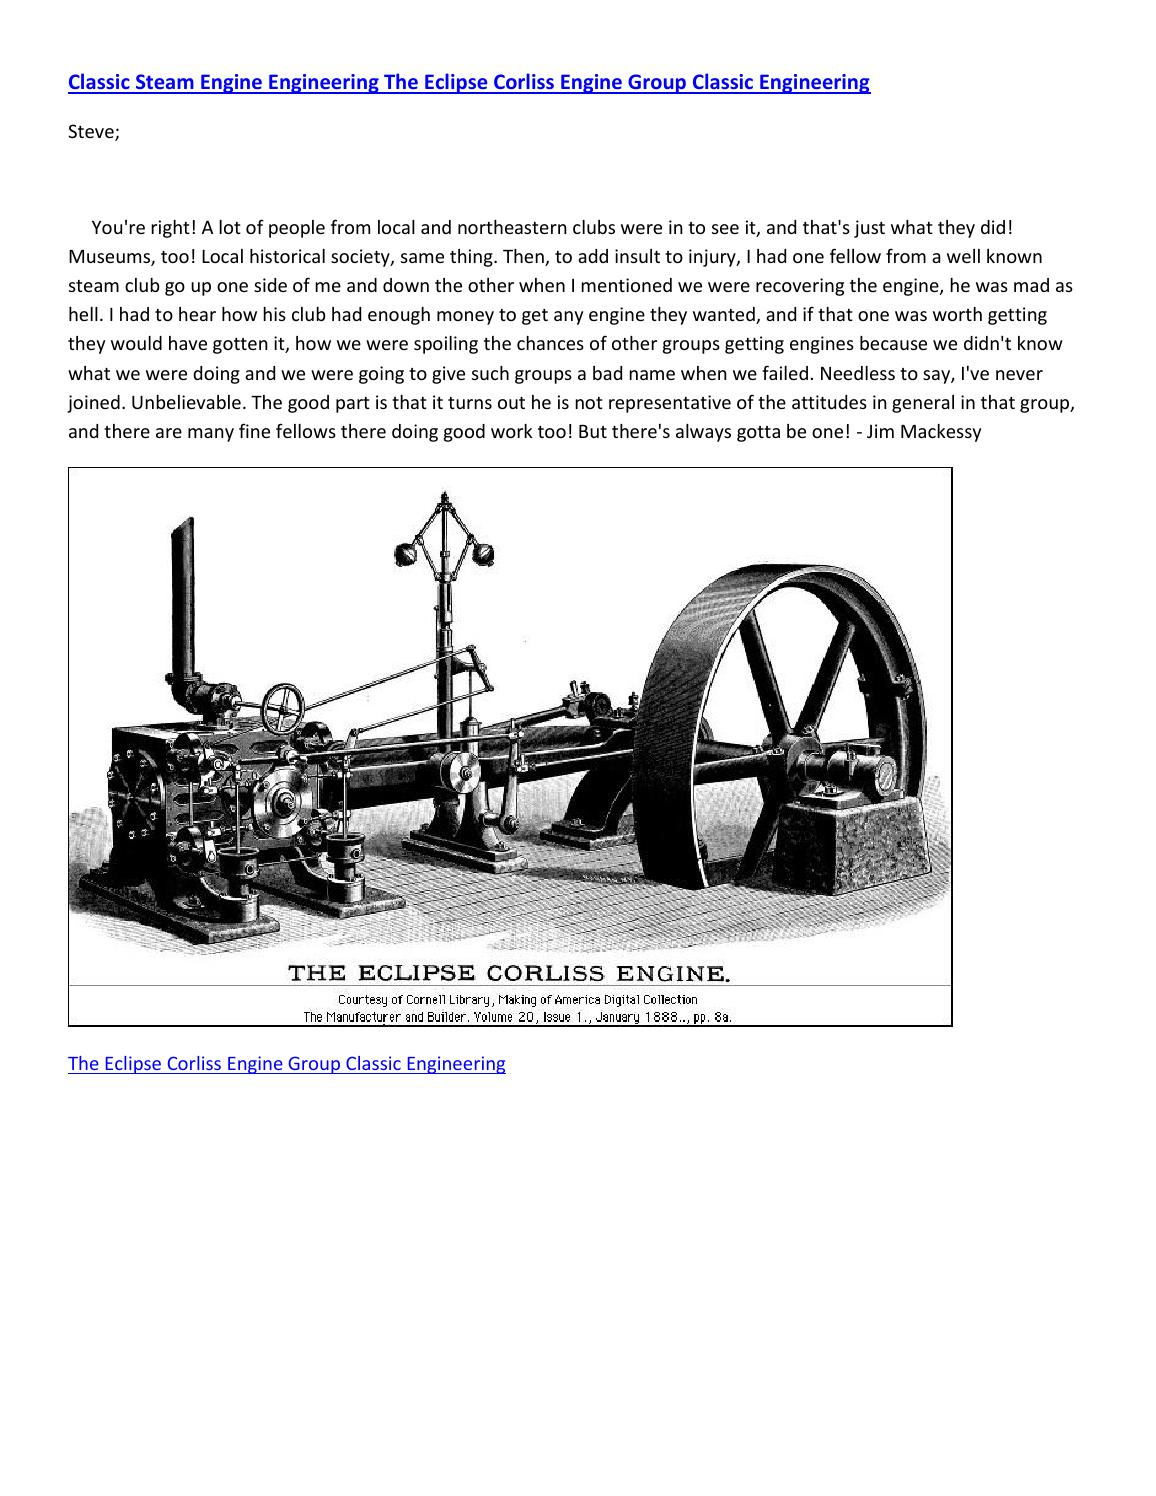 Classic steam engine engineering the eclipse corliss engine group classic  engineering by mathilderasmussen - issuu